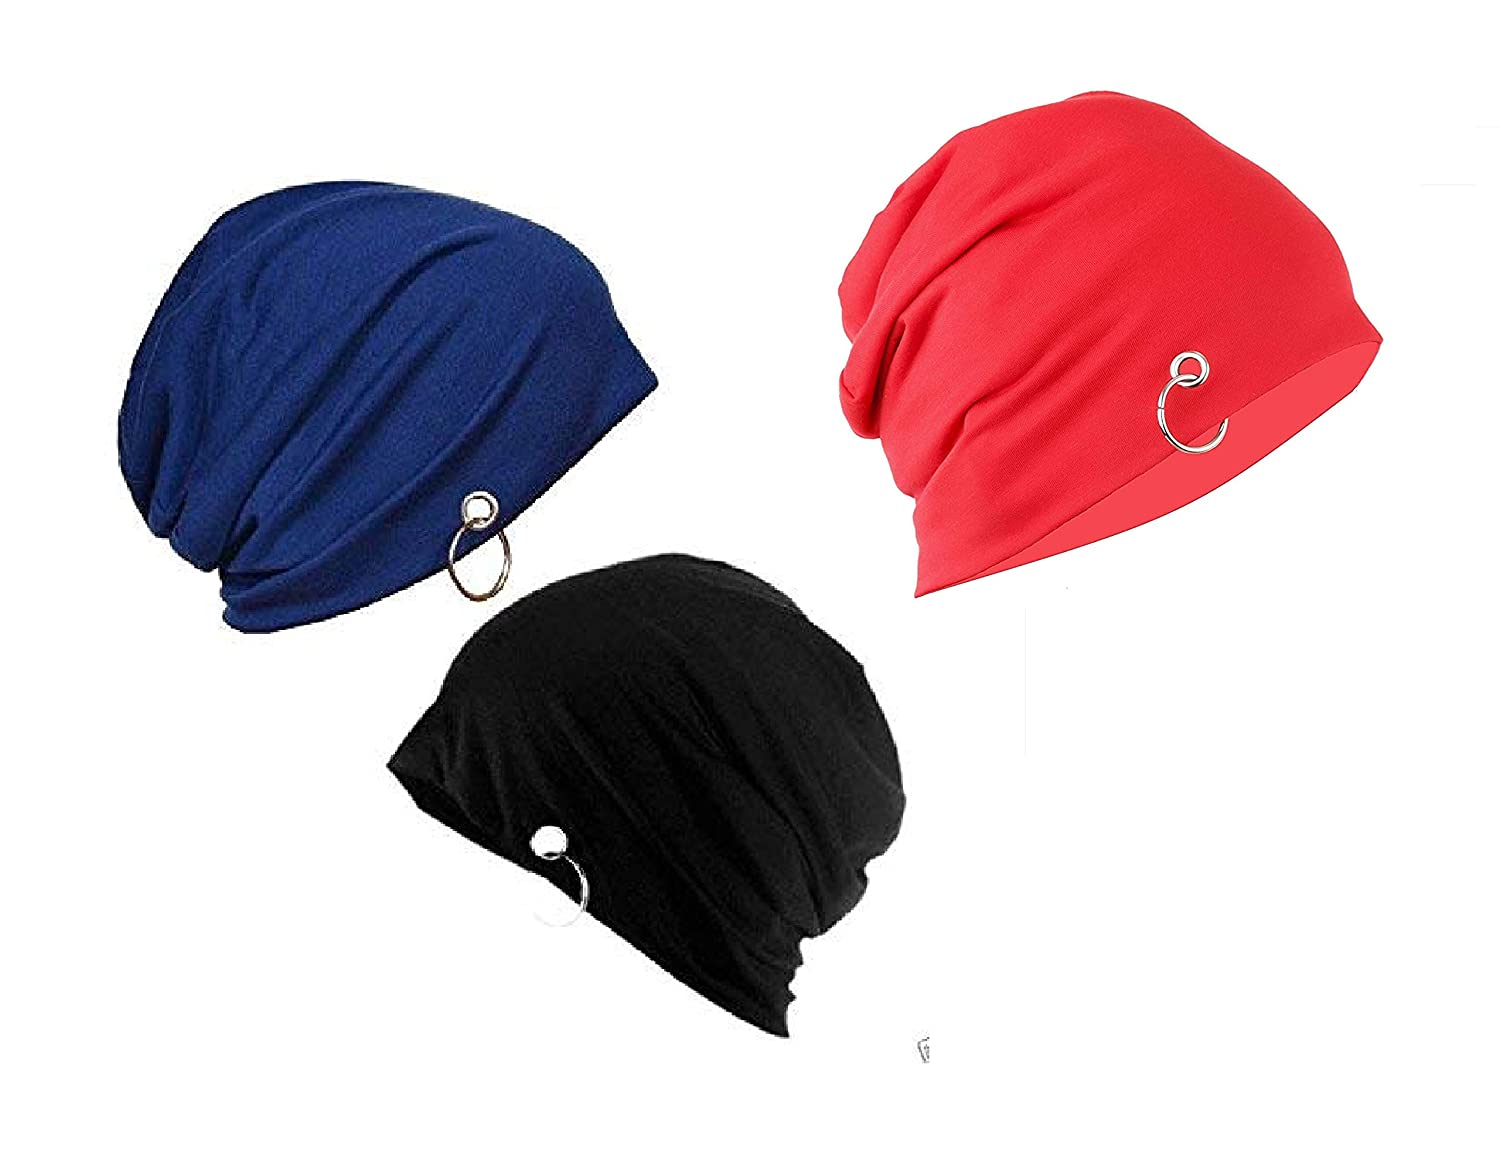 Stylathon Beanie Skull Cap with Ring for Men and Women Winter Cap - Blue +  Black + Red  Amazon.in  Clothing   Accessories af4a3479a88